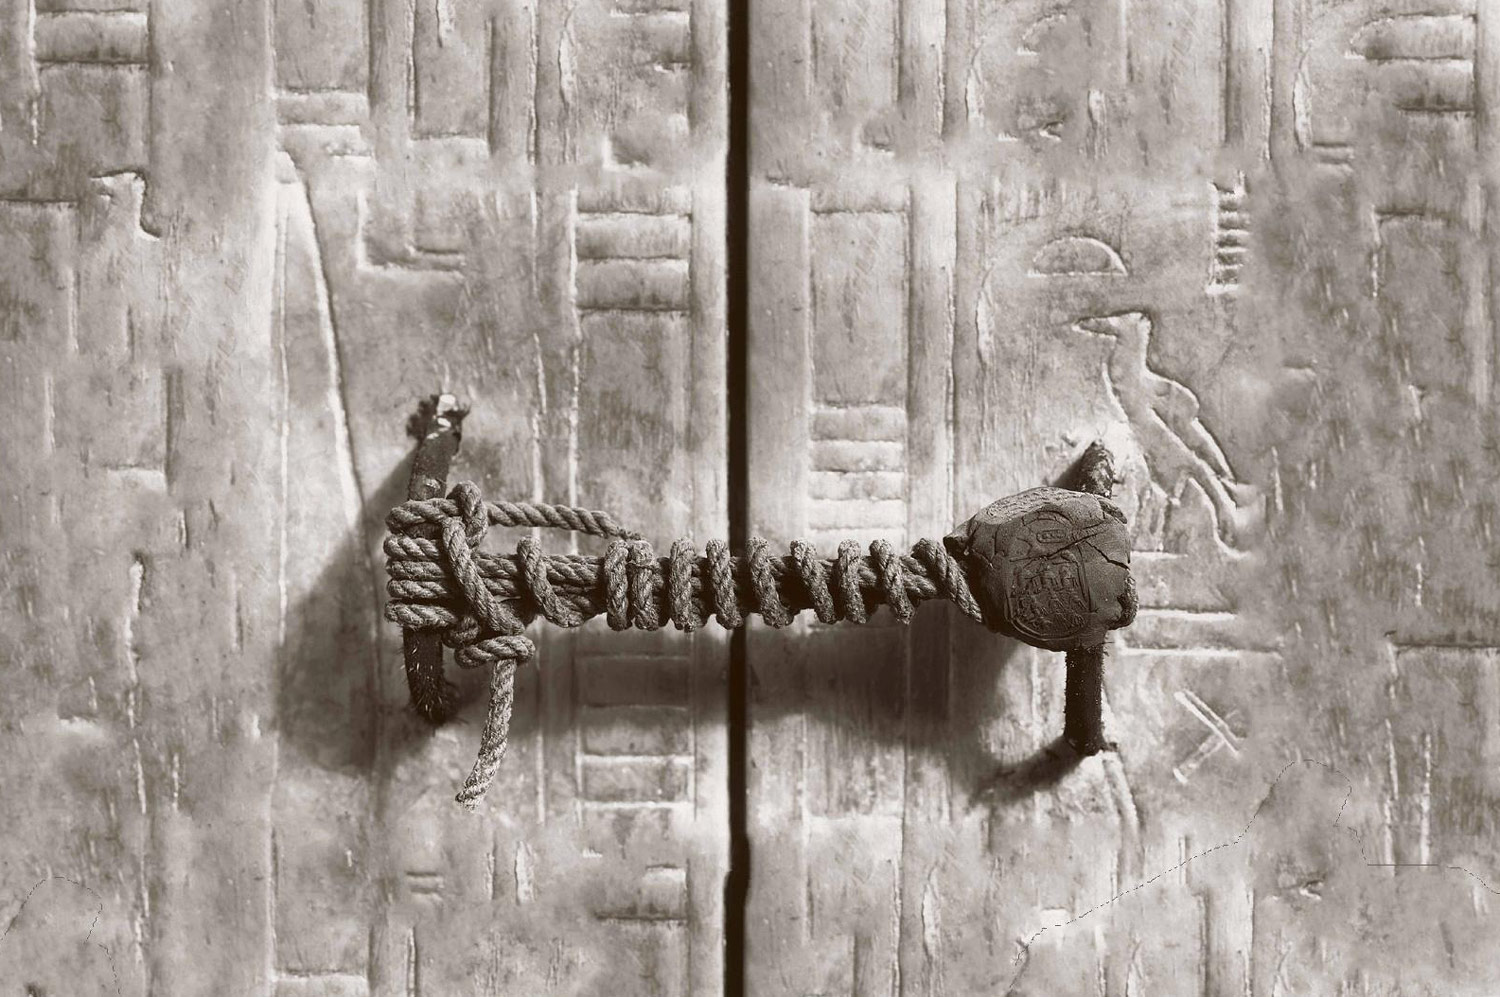 Photo: The unbroken seal on Tutankhamun's tomb, 1922. The tomb had remained hidden for over 3,000 years.